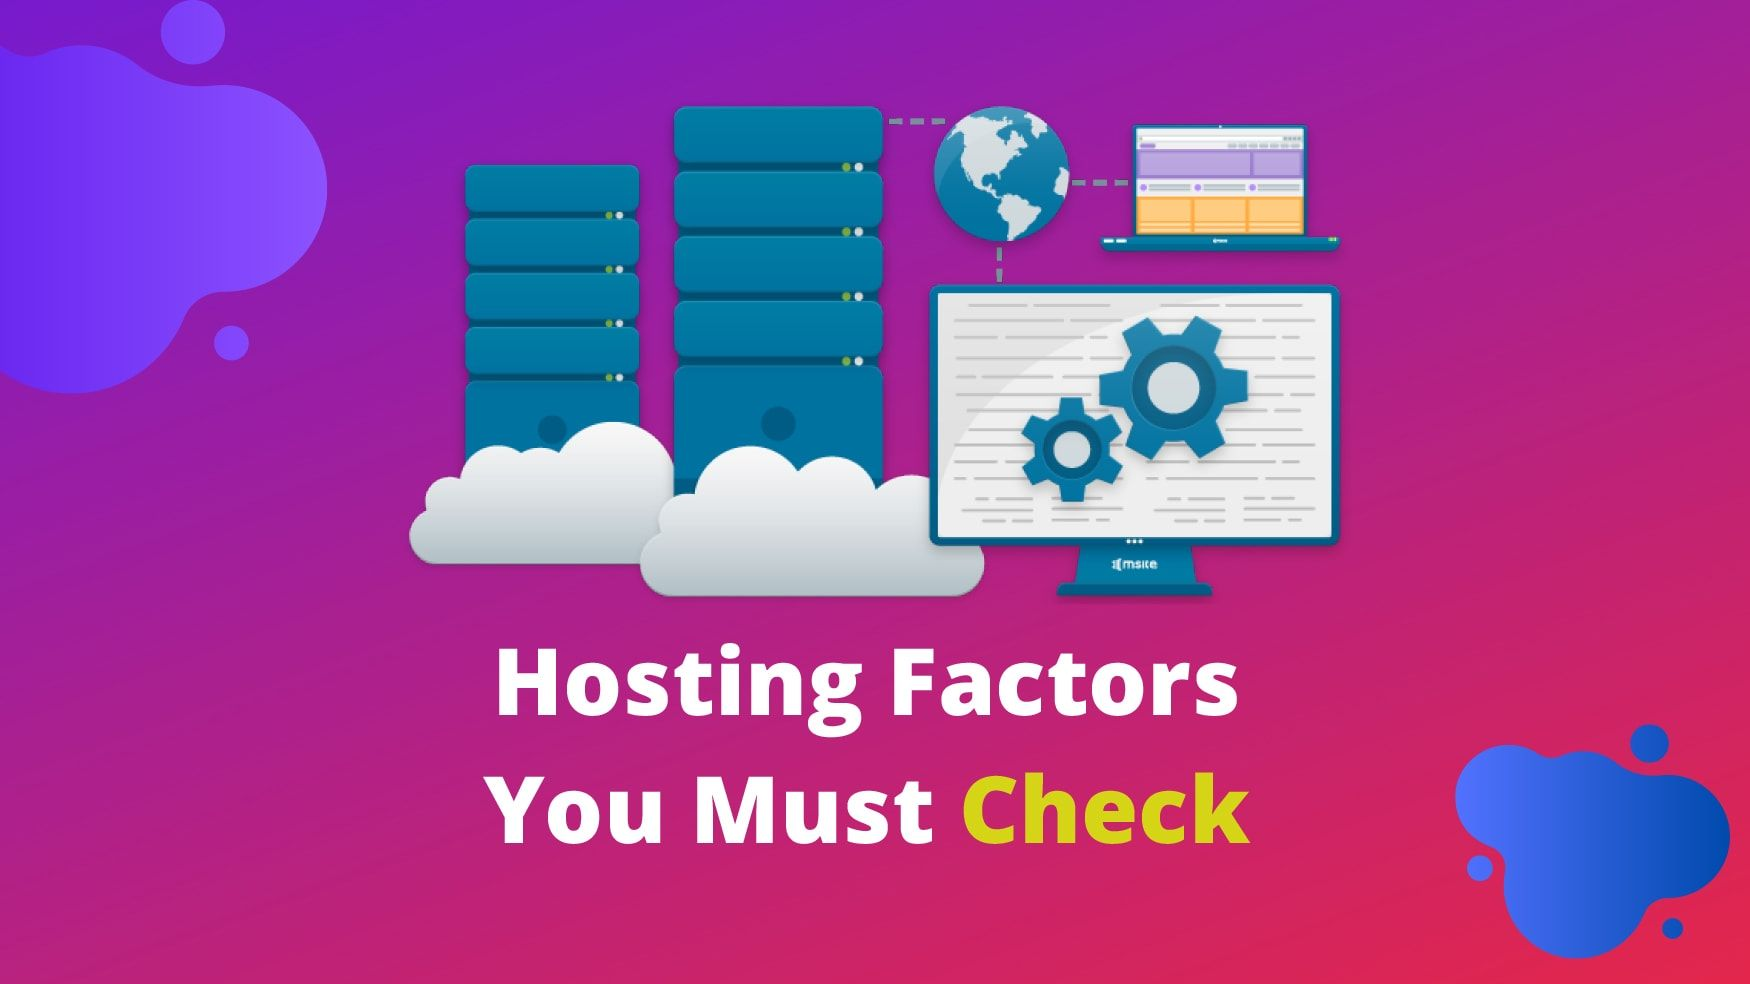 Hosting-Factors-You-Must-Check-min